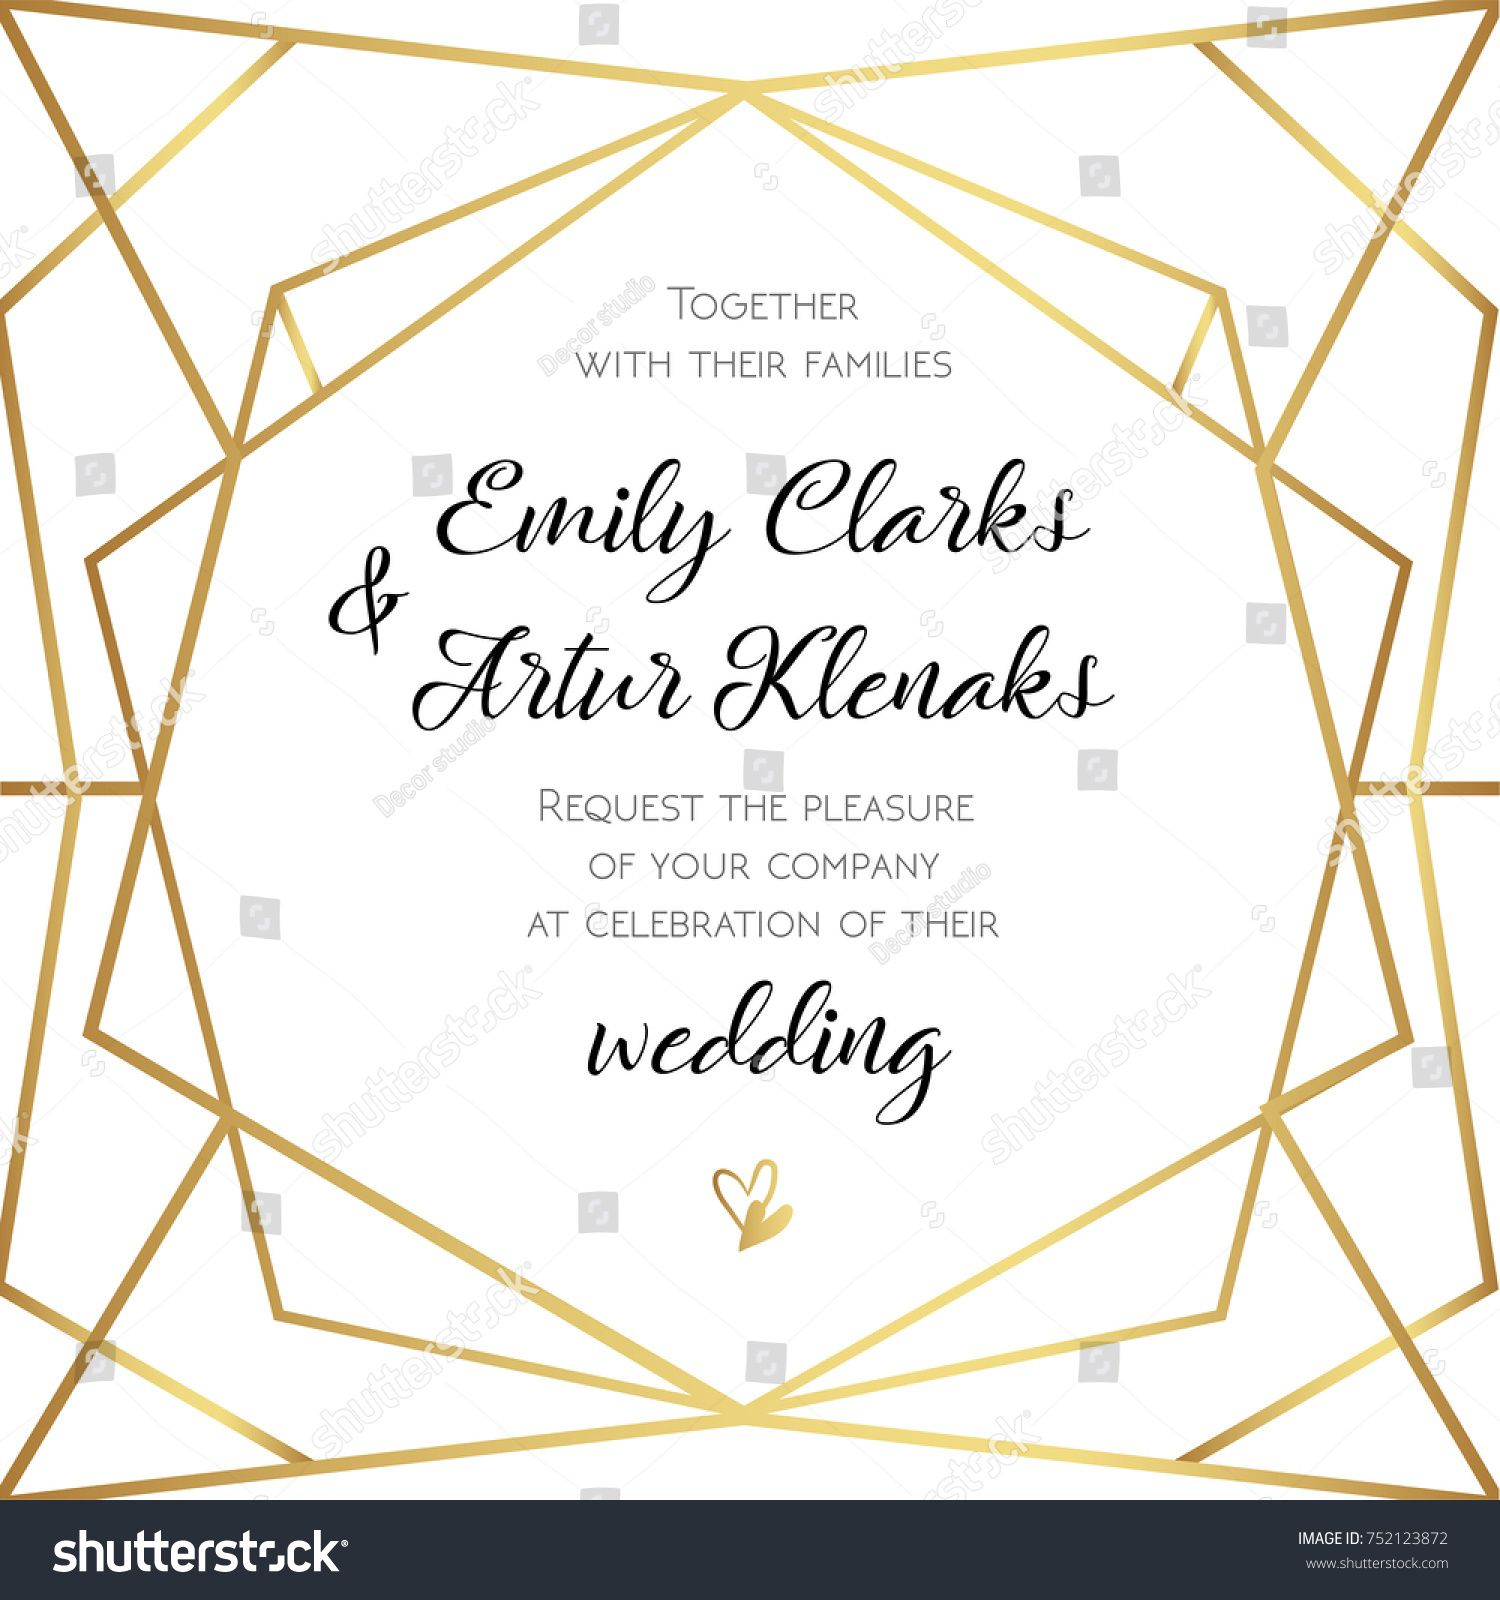 Wedding invitation invite card design with geometrical art lines wedding invitation invite card design with geometrical art lines gold foil border frame stopboris Choice Image